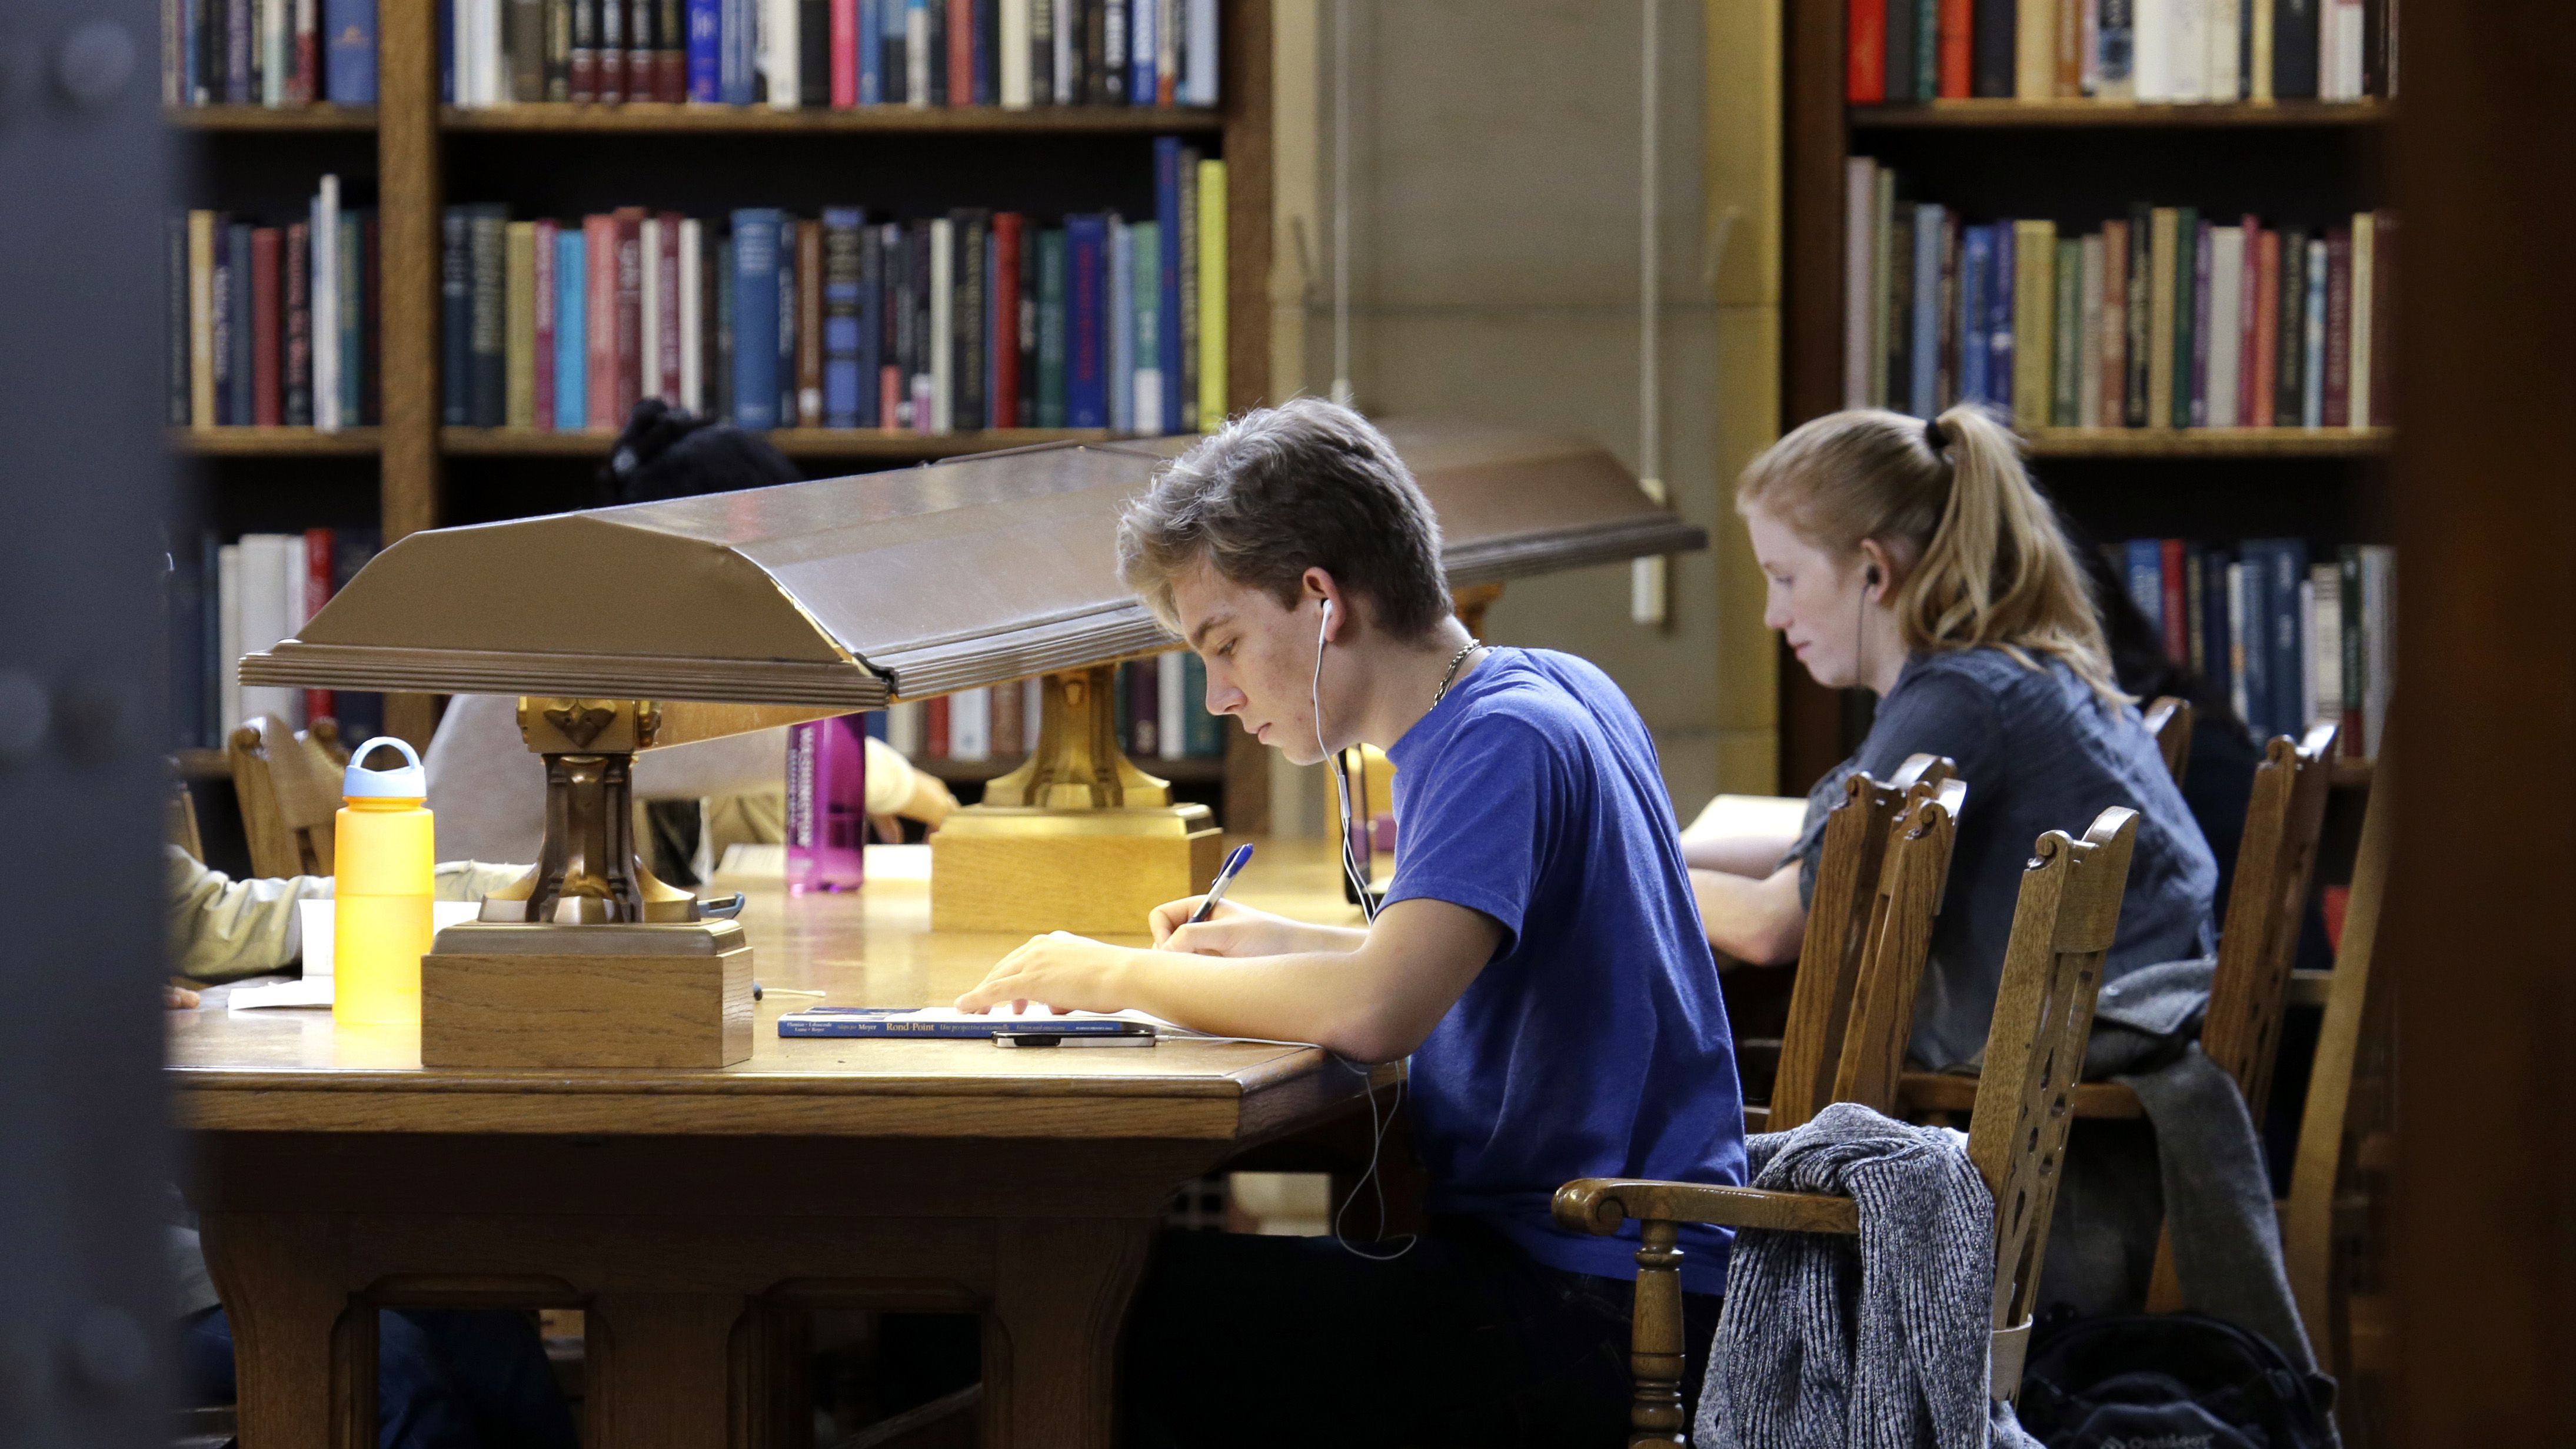 In this photo taken Tuesday, Oct. 15, 2013, University of Washington students study in Odegaard Library on the campus in Seattle. As Washington's prepaid tuition program opens its doors to new investors Friday, Oct. 31, 2013, parents may wonder if it's a good way to save for college.The answer depends on the age of your children, your family's financial situation and some unknown factors such as how much tuition will go up in the future, inflation and the stock market. (AP Photo/Elaine Thompson)